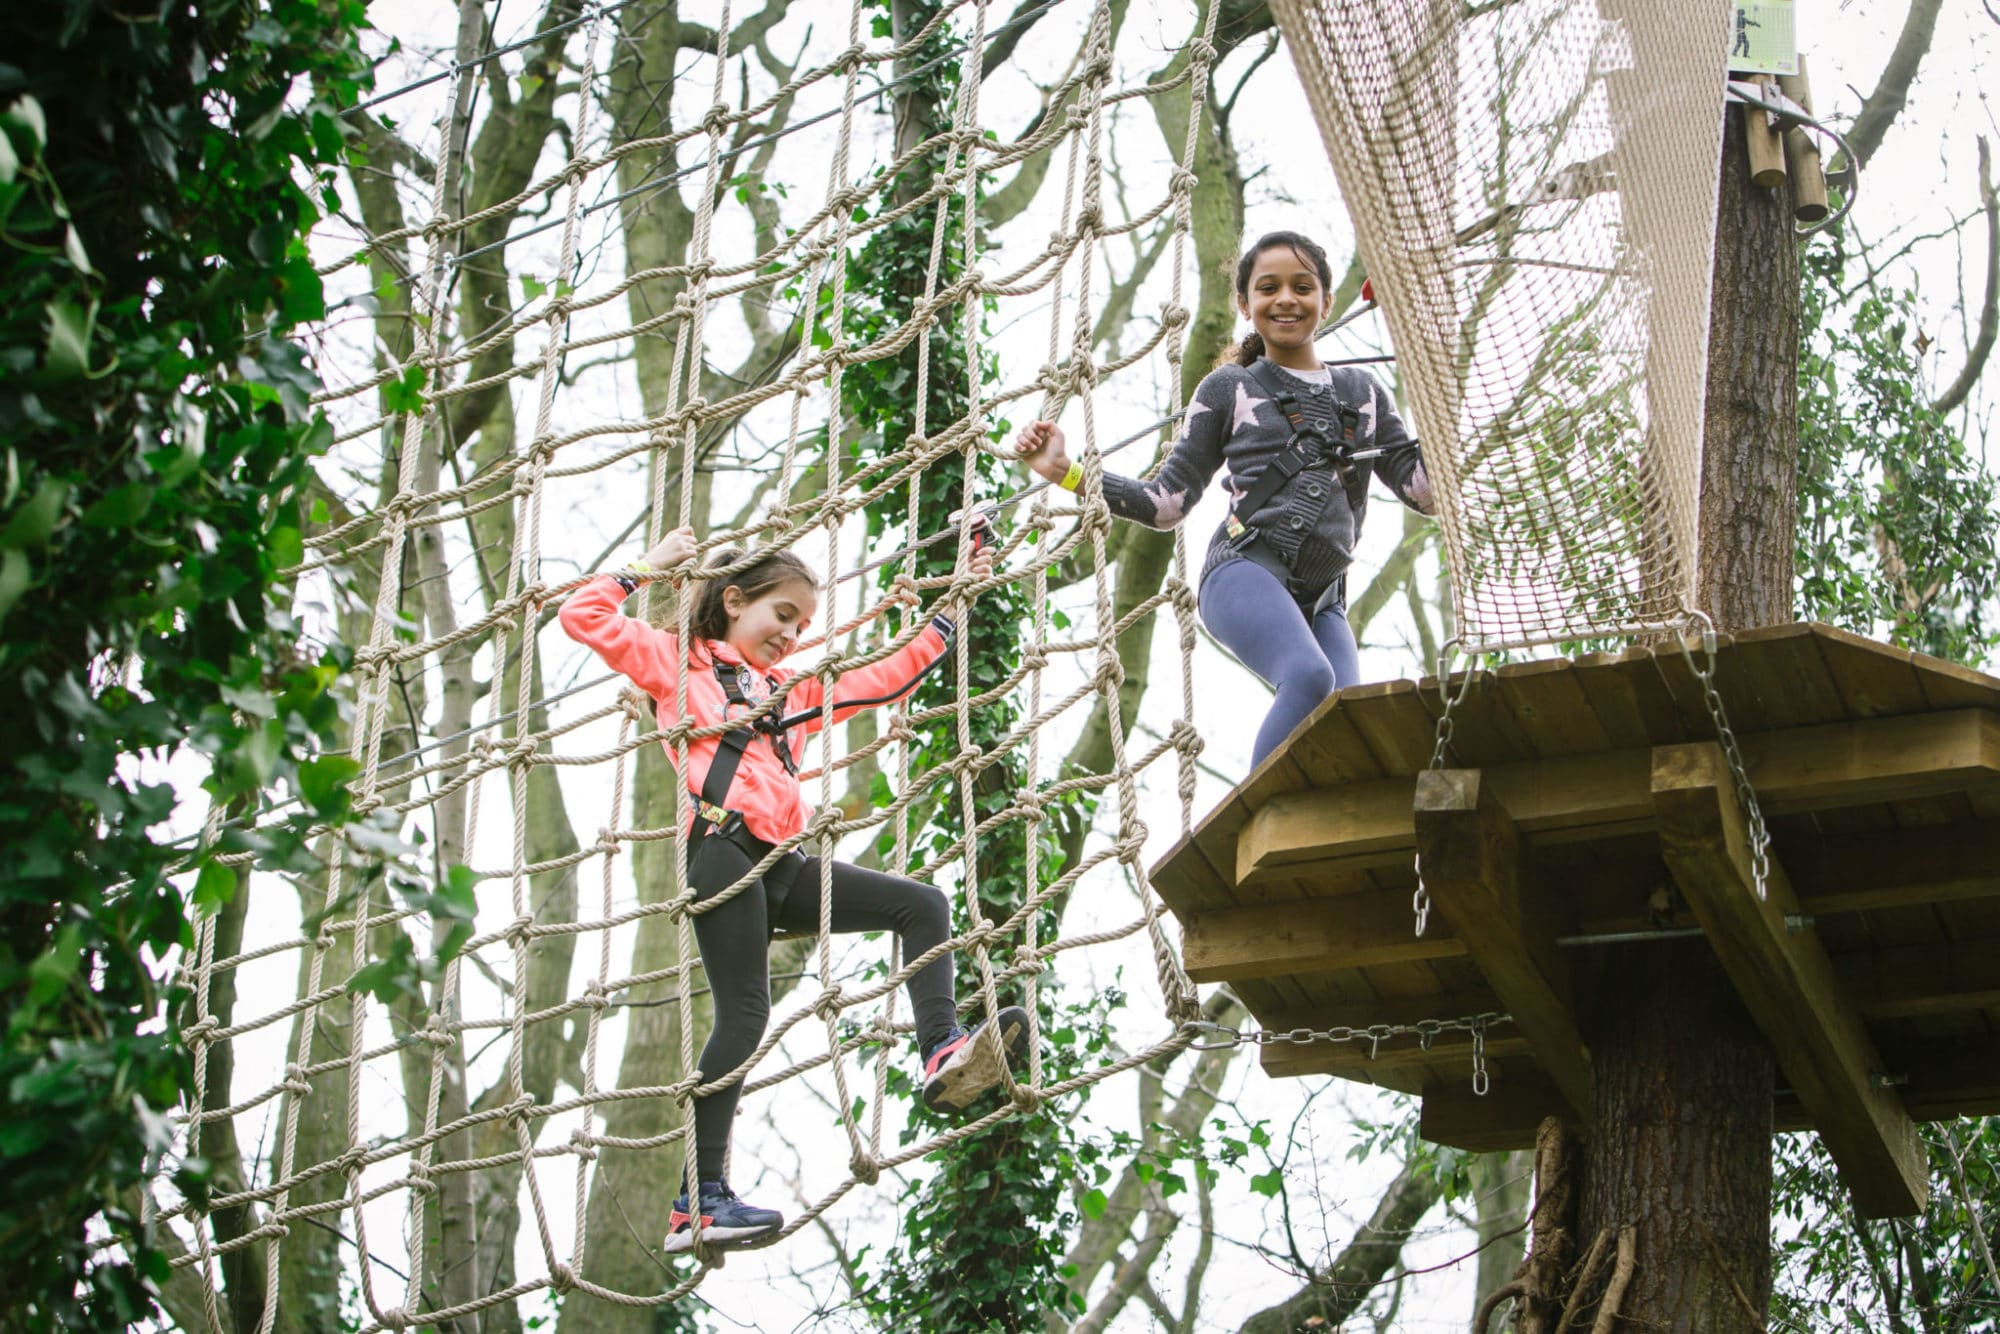 Two children climb through aerial rope obstacles at Go Ape Treetop Journey